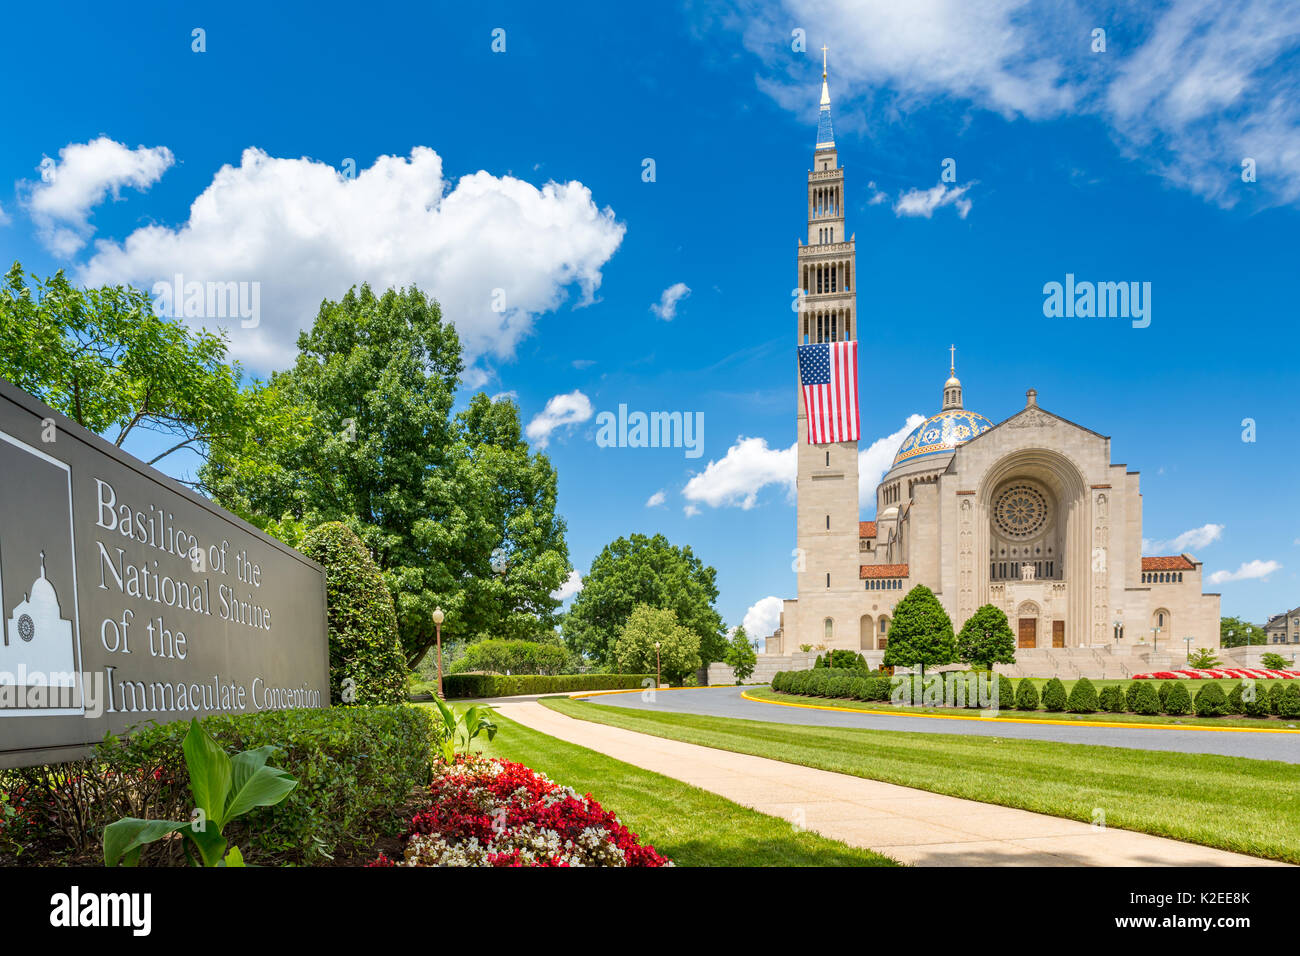 Basilica of the National Shrine of the Immaculate Conception.  The Shrine is the largest Catholic church in North America and in the top ten of the la - Stock Image